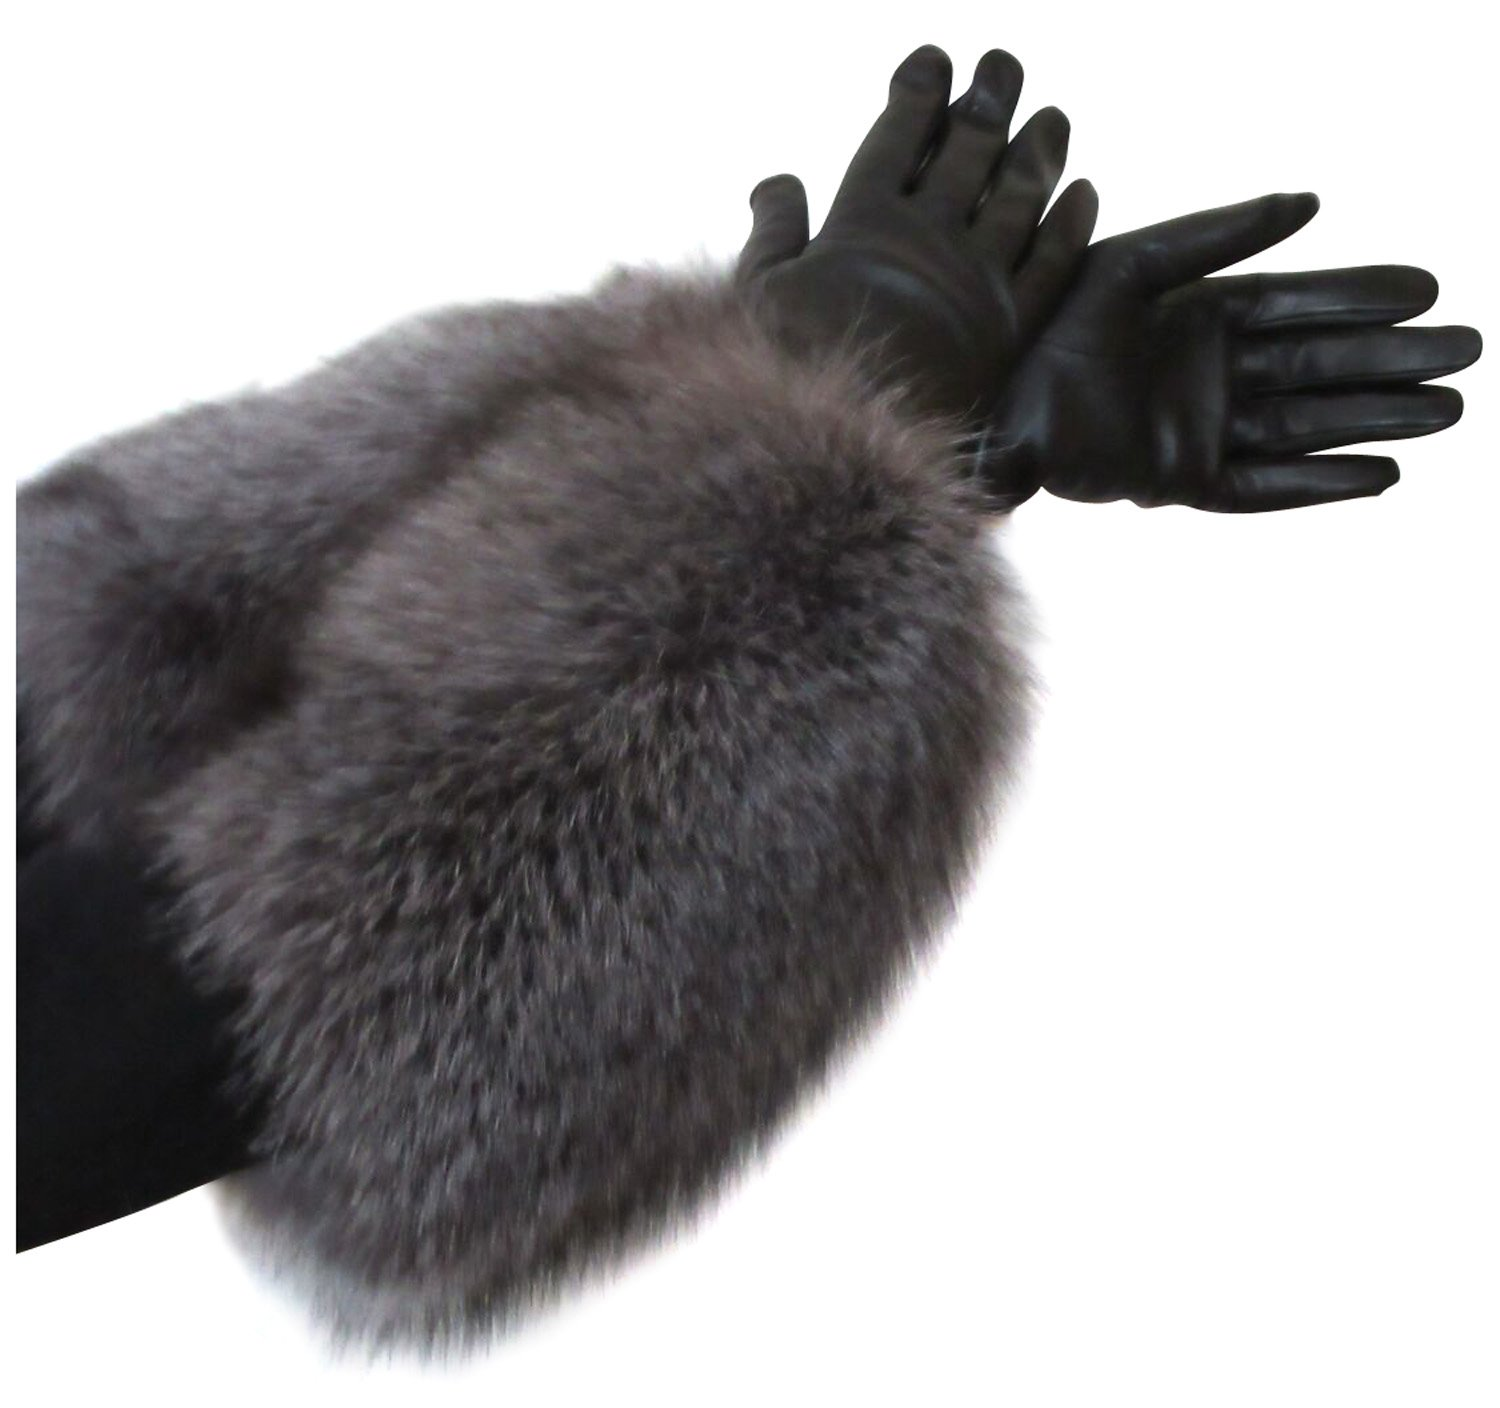 Black Cashmere Lined Leather Gloves Extended to Opera Length by Indigo Fox Cuffs 7.5 by FursNewYork (Image #3)